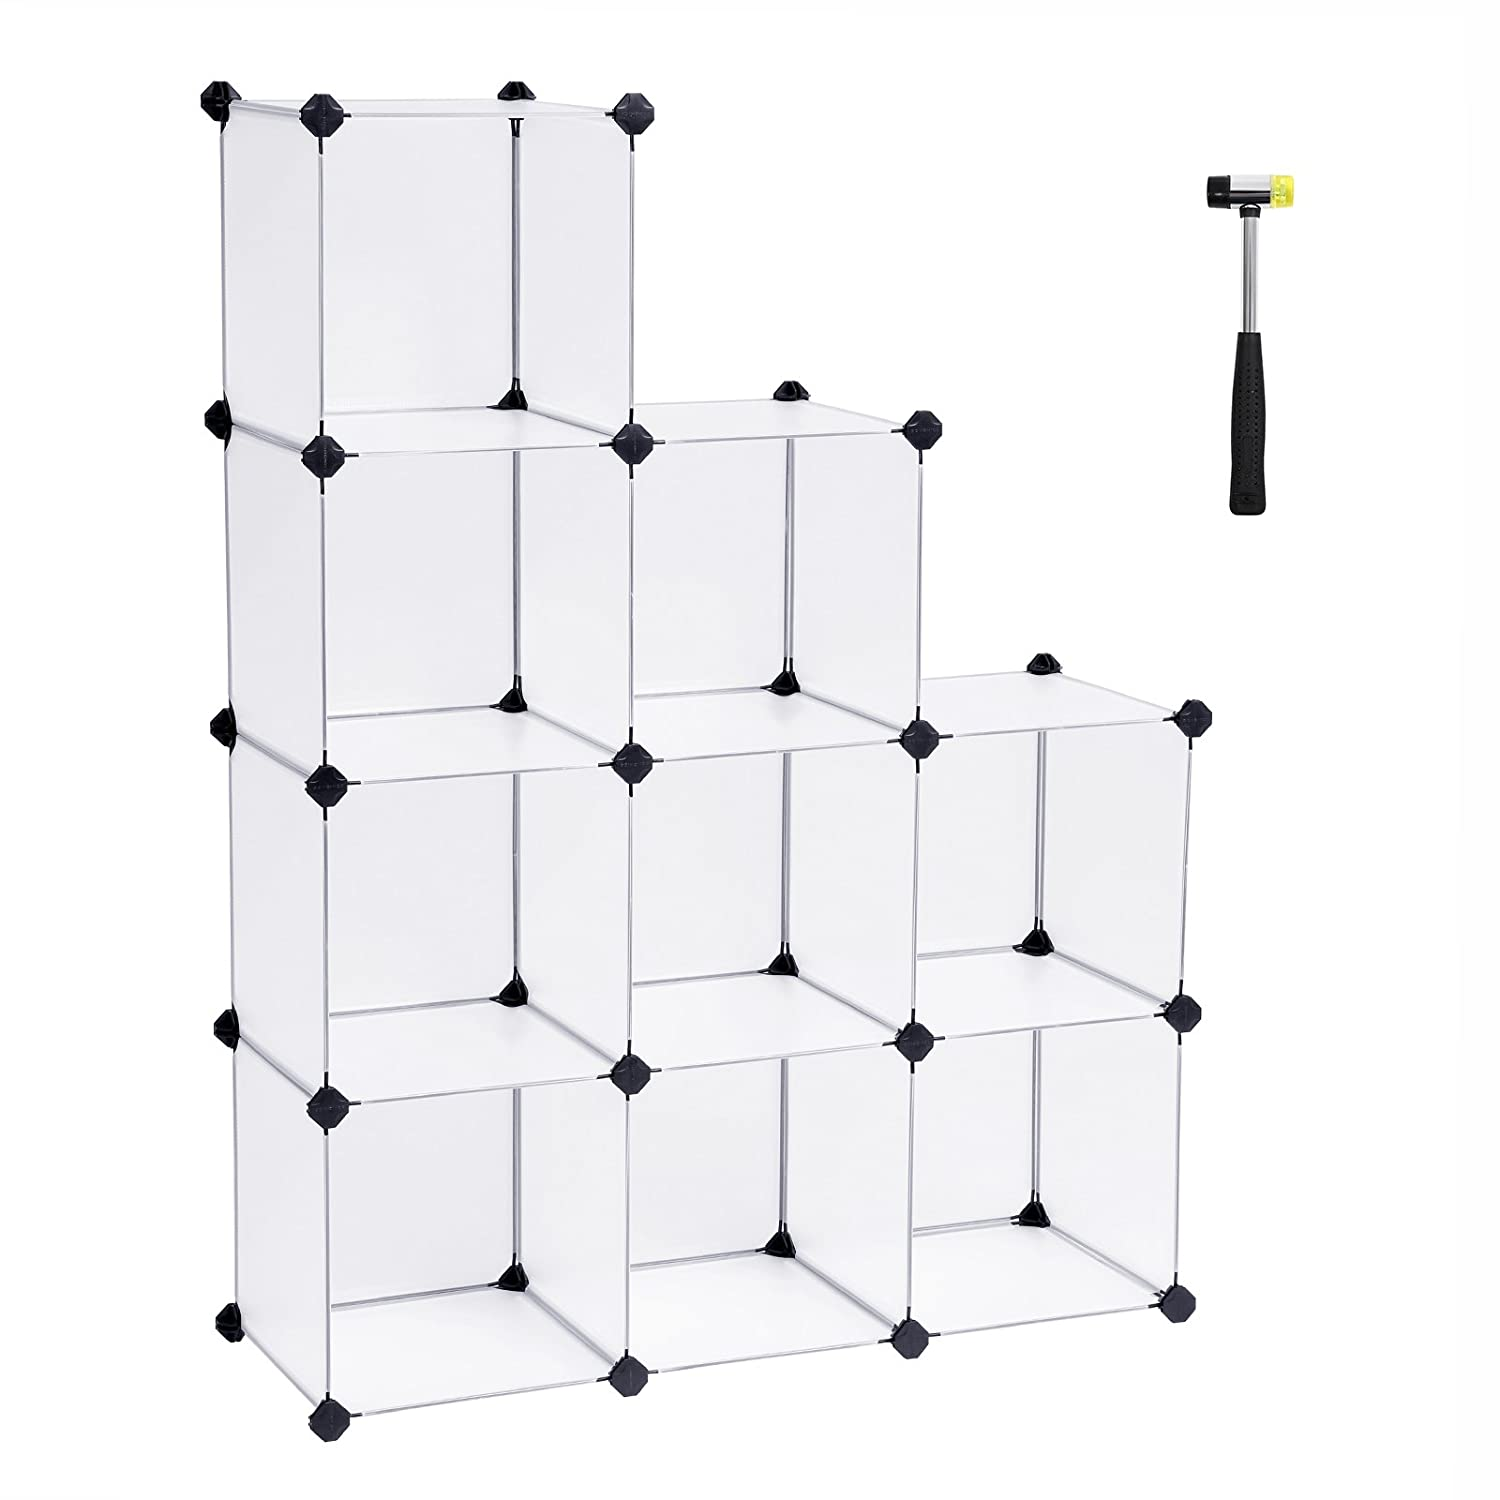 SONGMICS Cube Storage Organizer, 9-Cube Closet Storage Shelves, DIY Plastic Closet Cabinet, Modular Bookcase, Storage Shelving for Bedroom, Living Room, Office, with Rubber Hammer,White, ULPC115S